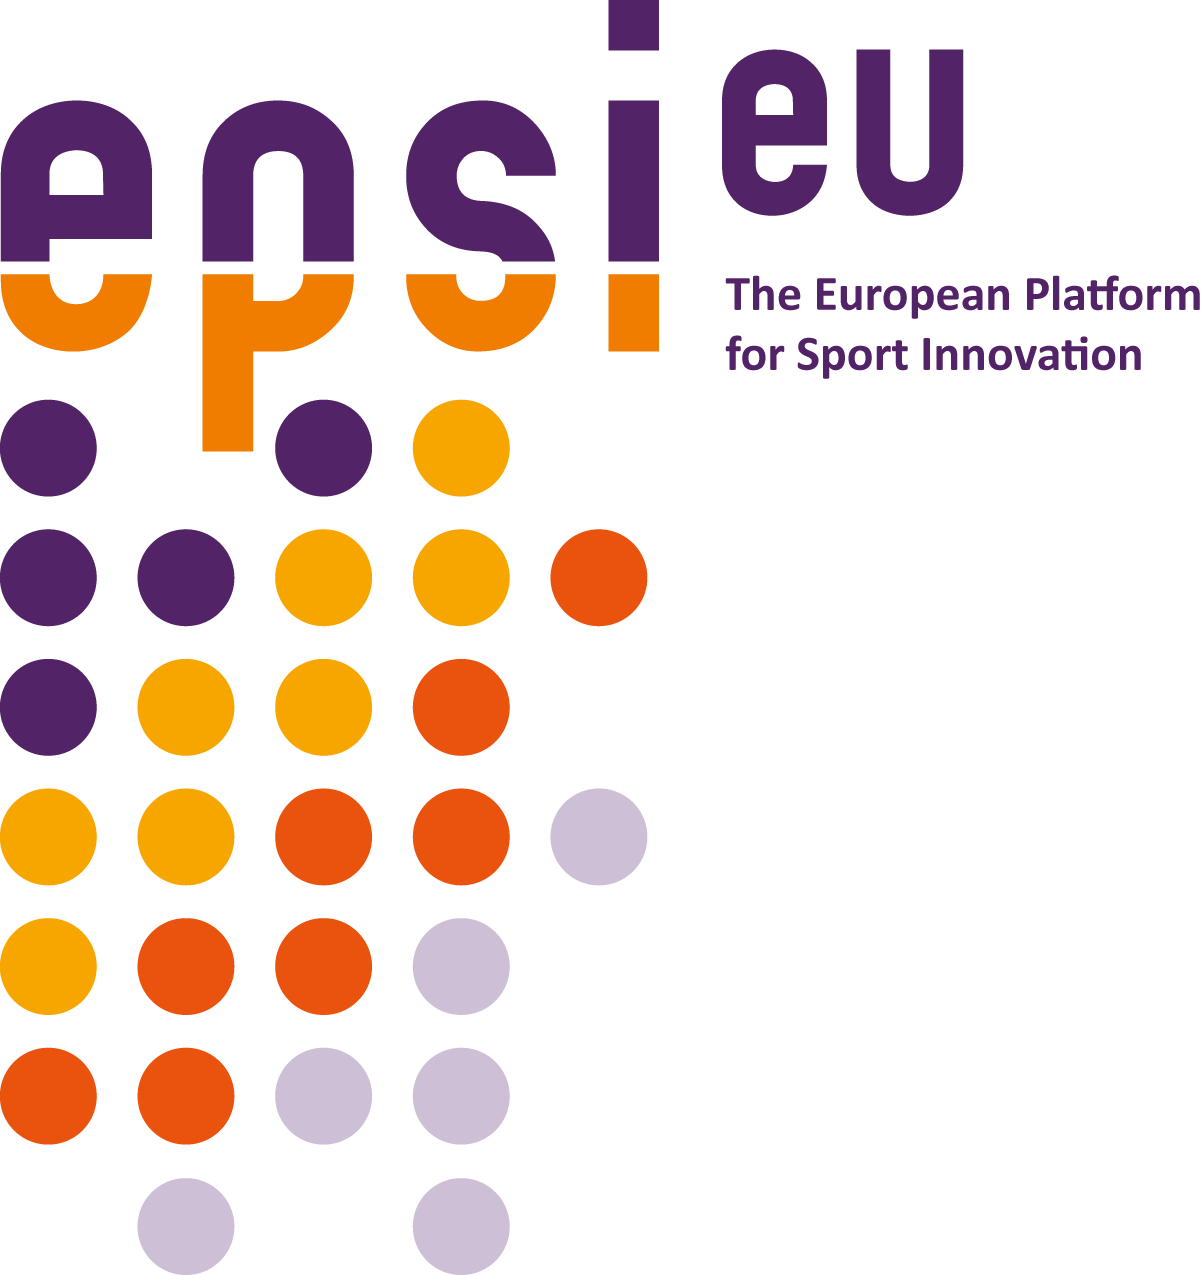 European Platform for Sport Innovation (EPSI)